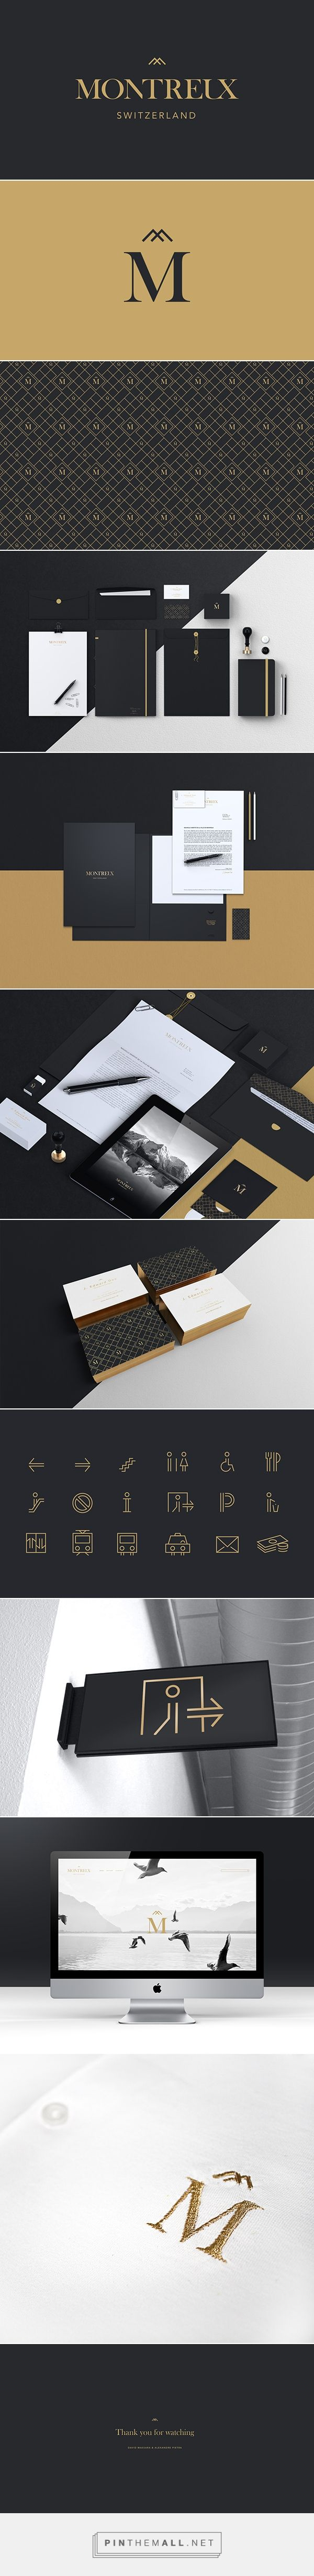 Montreux | Branding on Branding Served - created via http://pinthemall.net